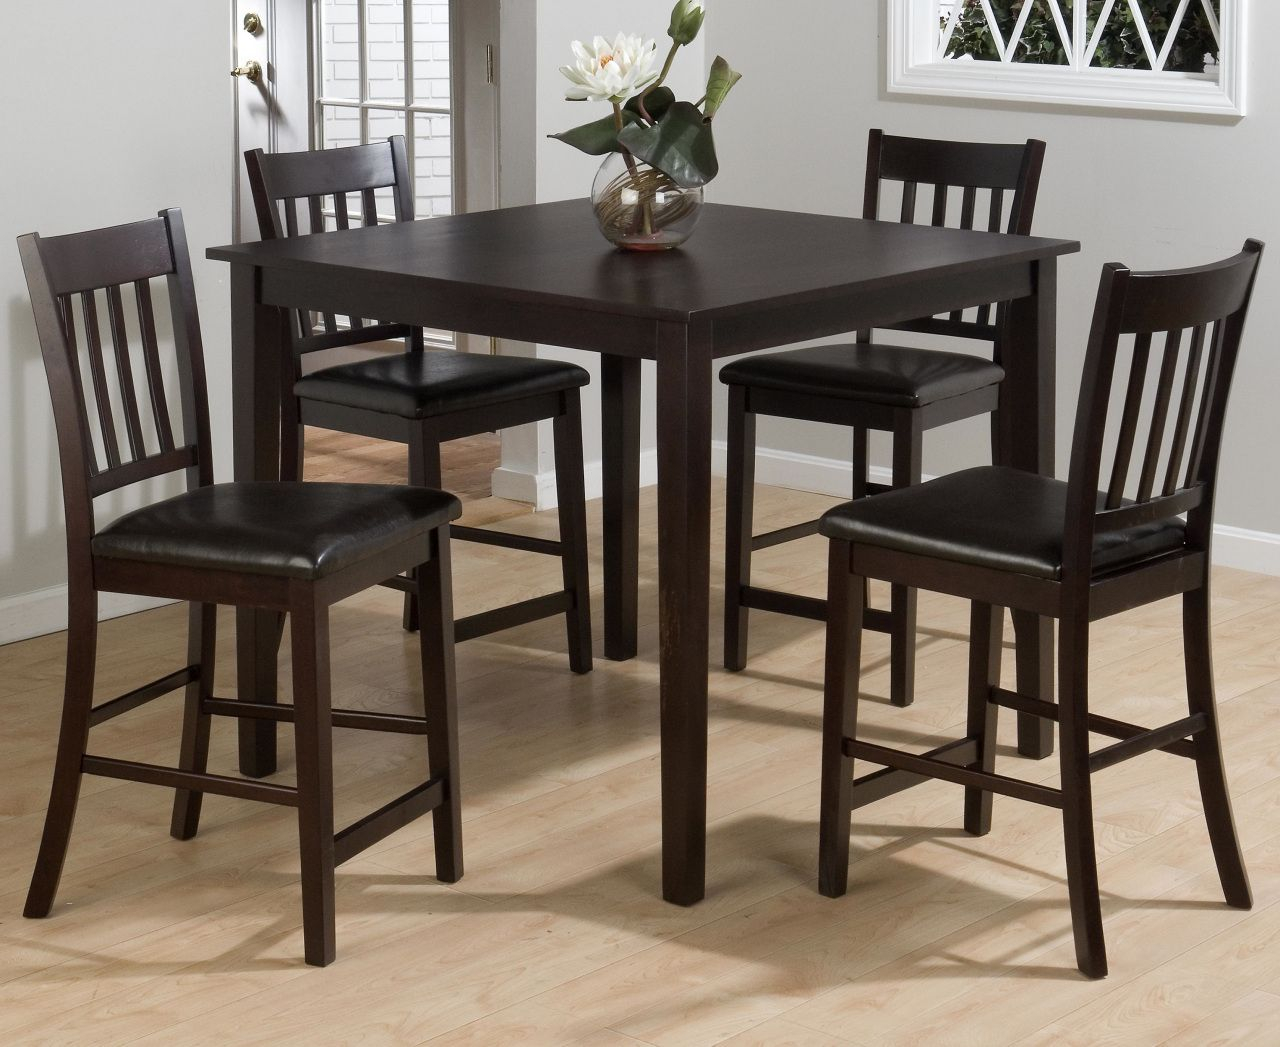 dining room table sets at big lots faucet ideas site on big lots furniture sets id=71881